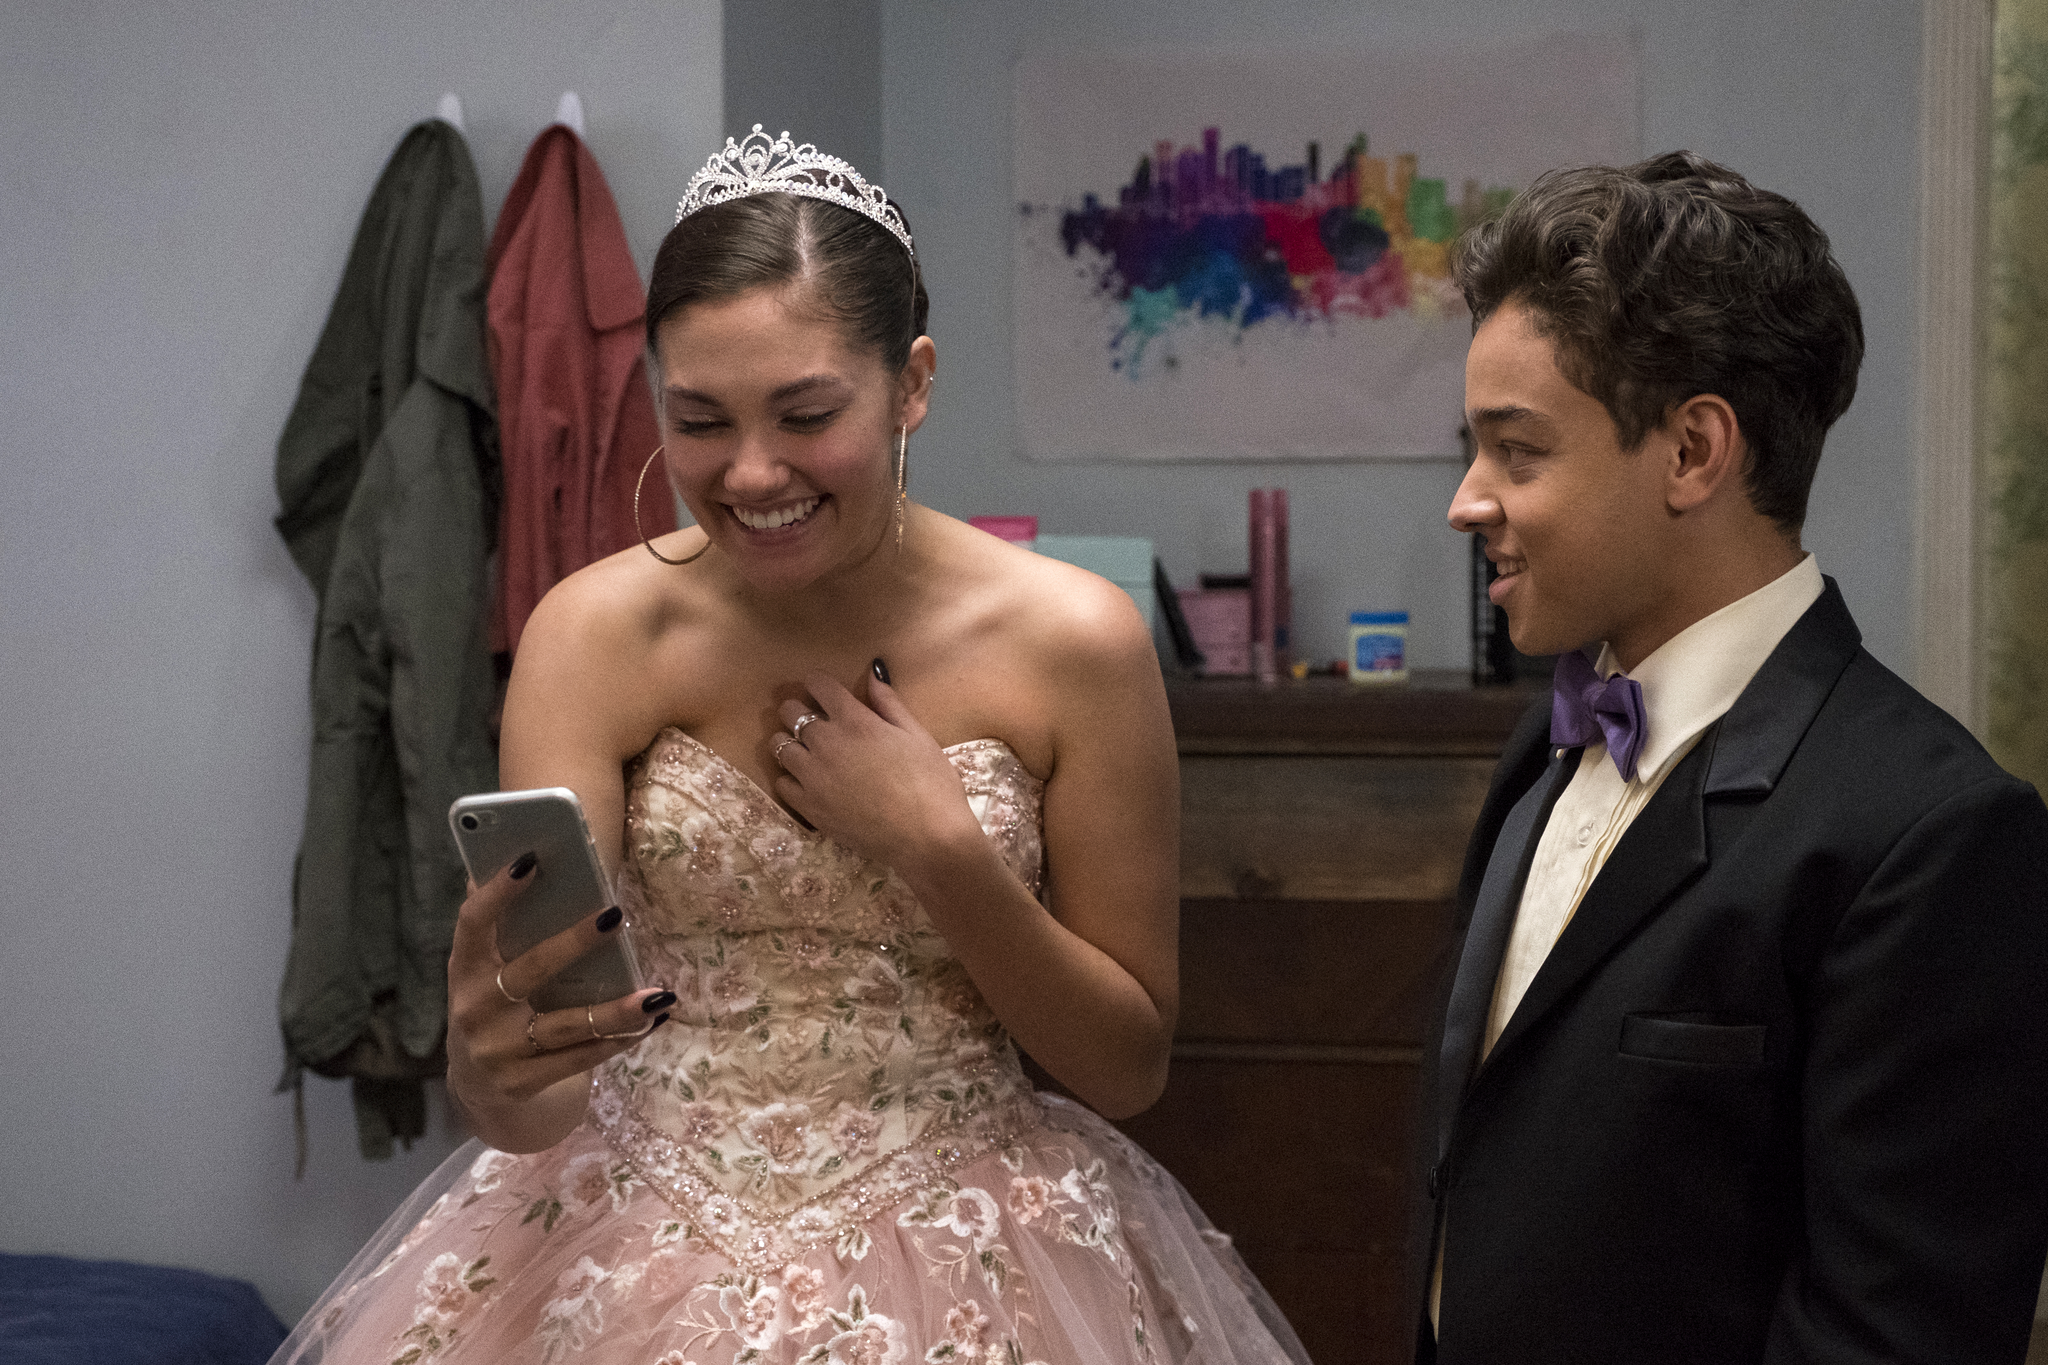 e168418d777 Any fan of Netflix s original teen dramedy On My Block is definitely having  a moment right now. After months of waiting for news on the show s season  two ...